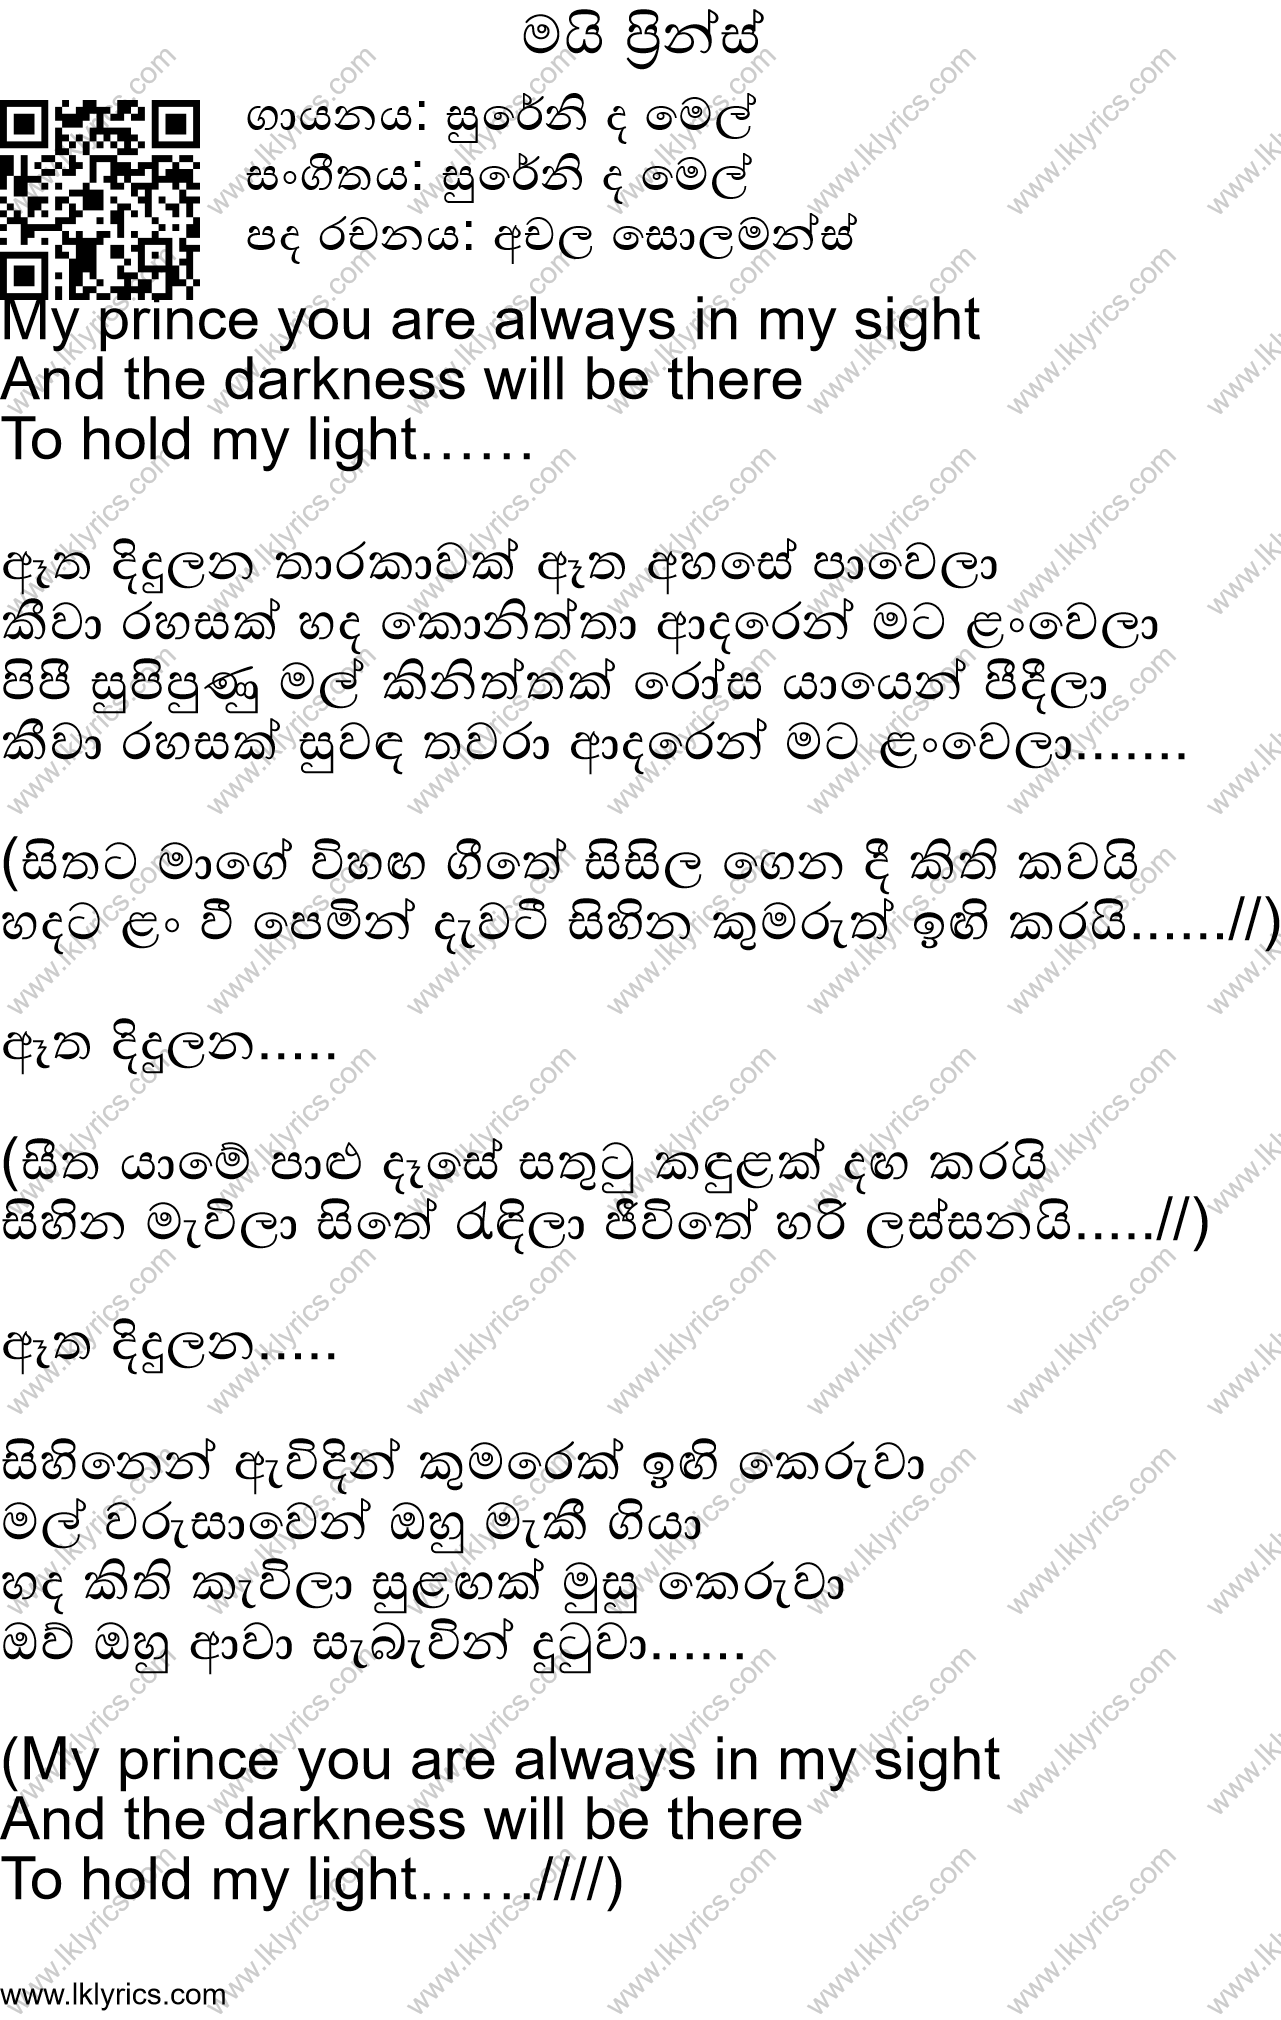 My prince you are always in my sight And the darkness will be there To hold my light…… ඈත දිදුලන තාරකාවක් ඈත අ...